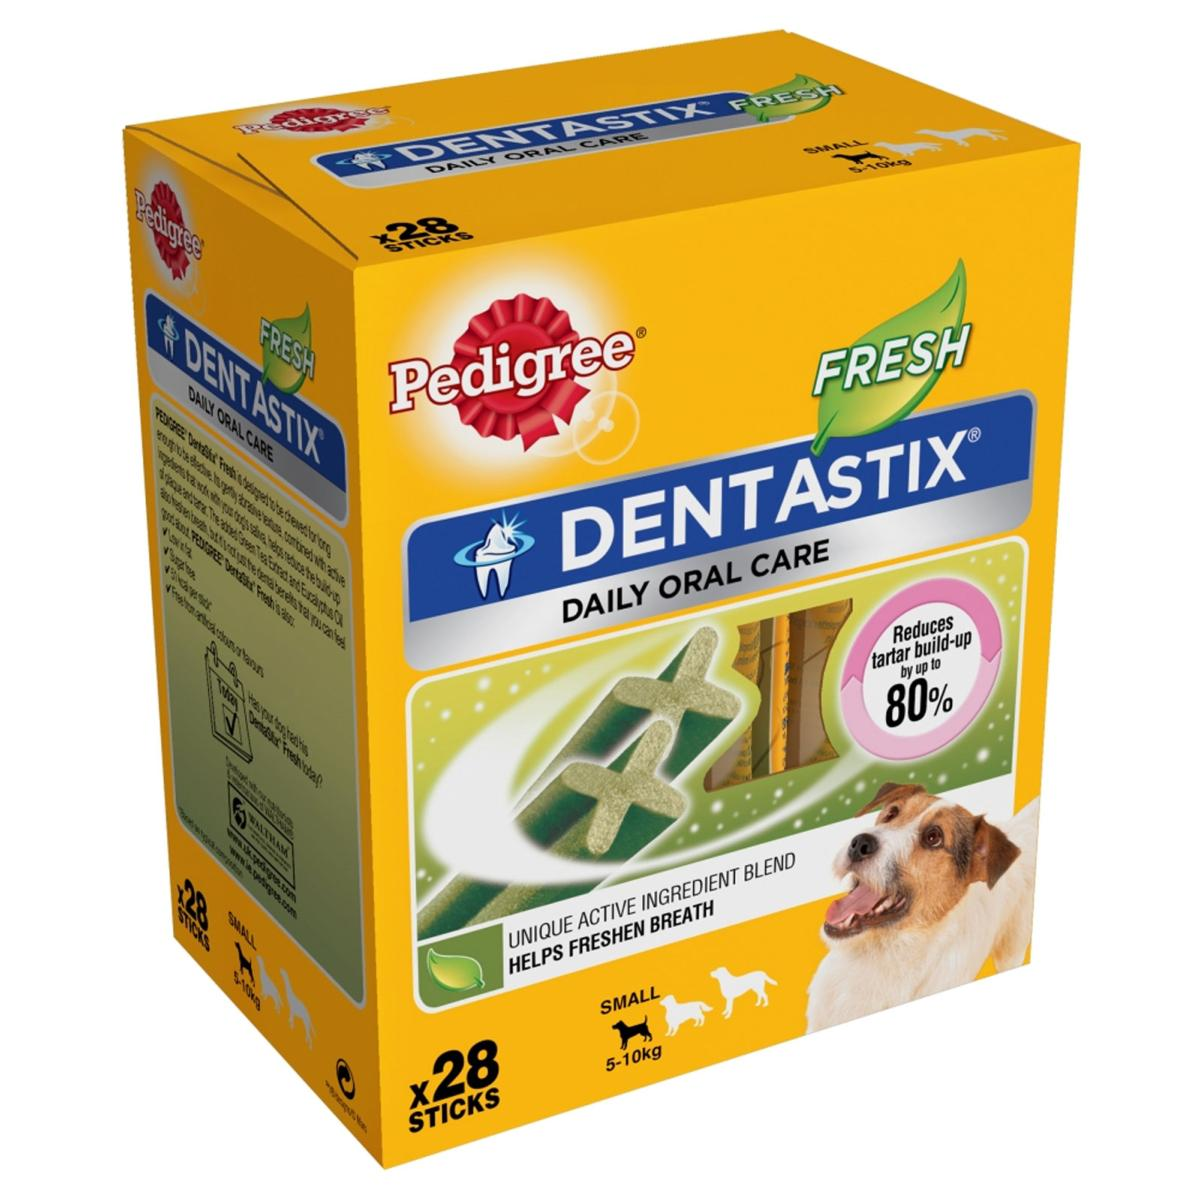 Pedigree Dentastix Fresh Daily Oral Care Dental Chews ...